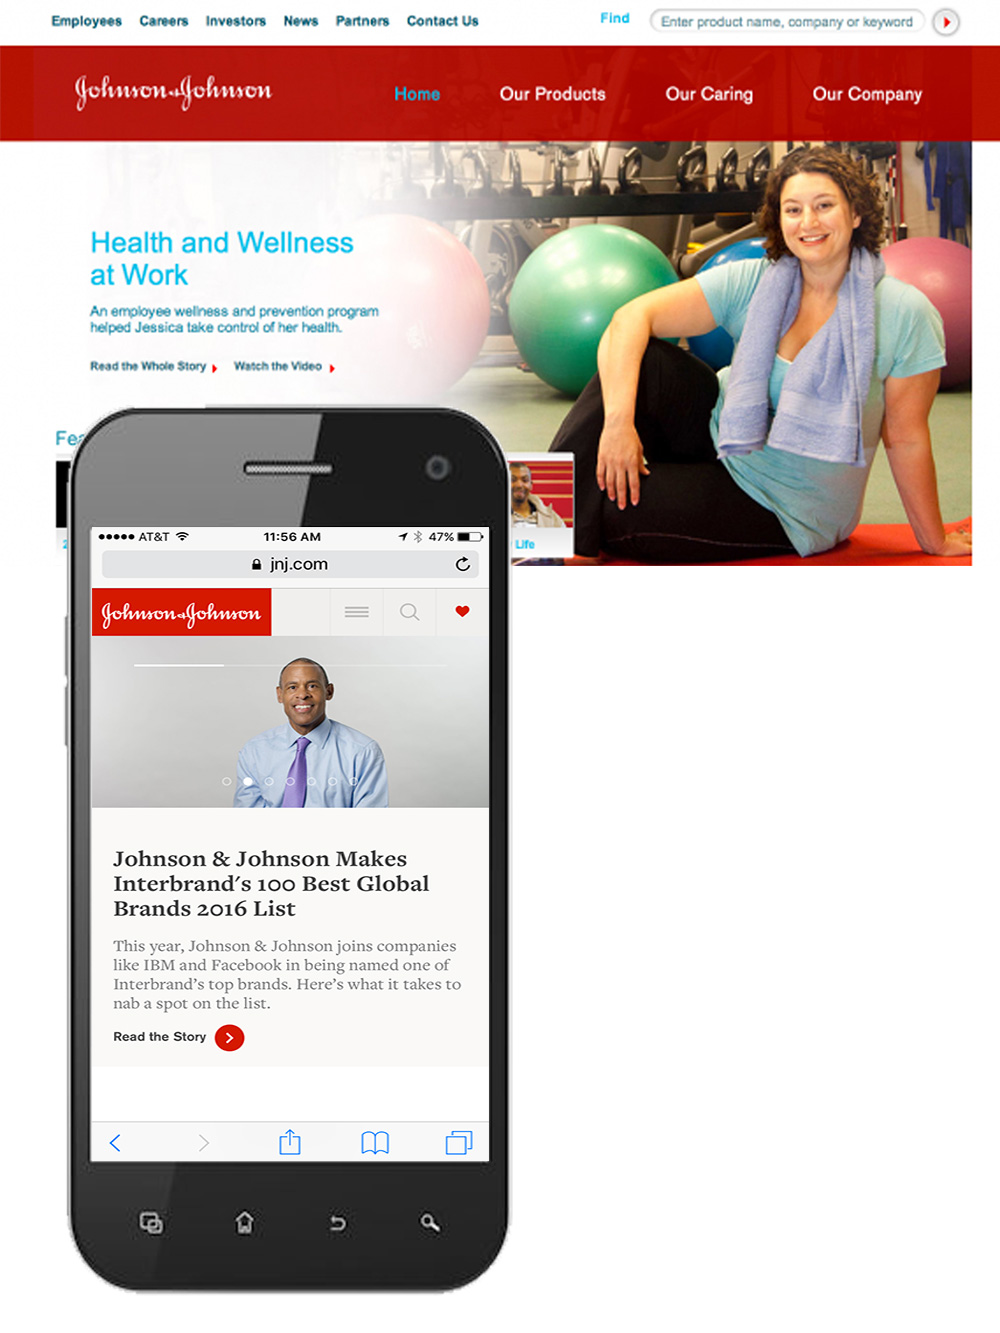 I worked with the web team to re-design the JNJ website to be mobile responsive. The project went smoothly and we were able to deploy the site updates in time for to make their annual review website mobile responsive.